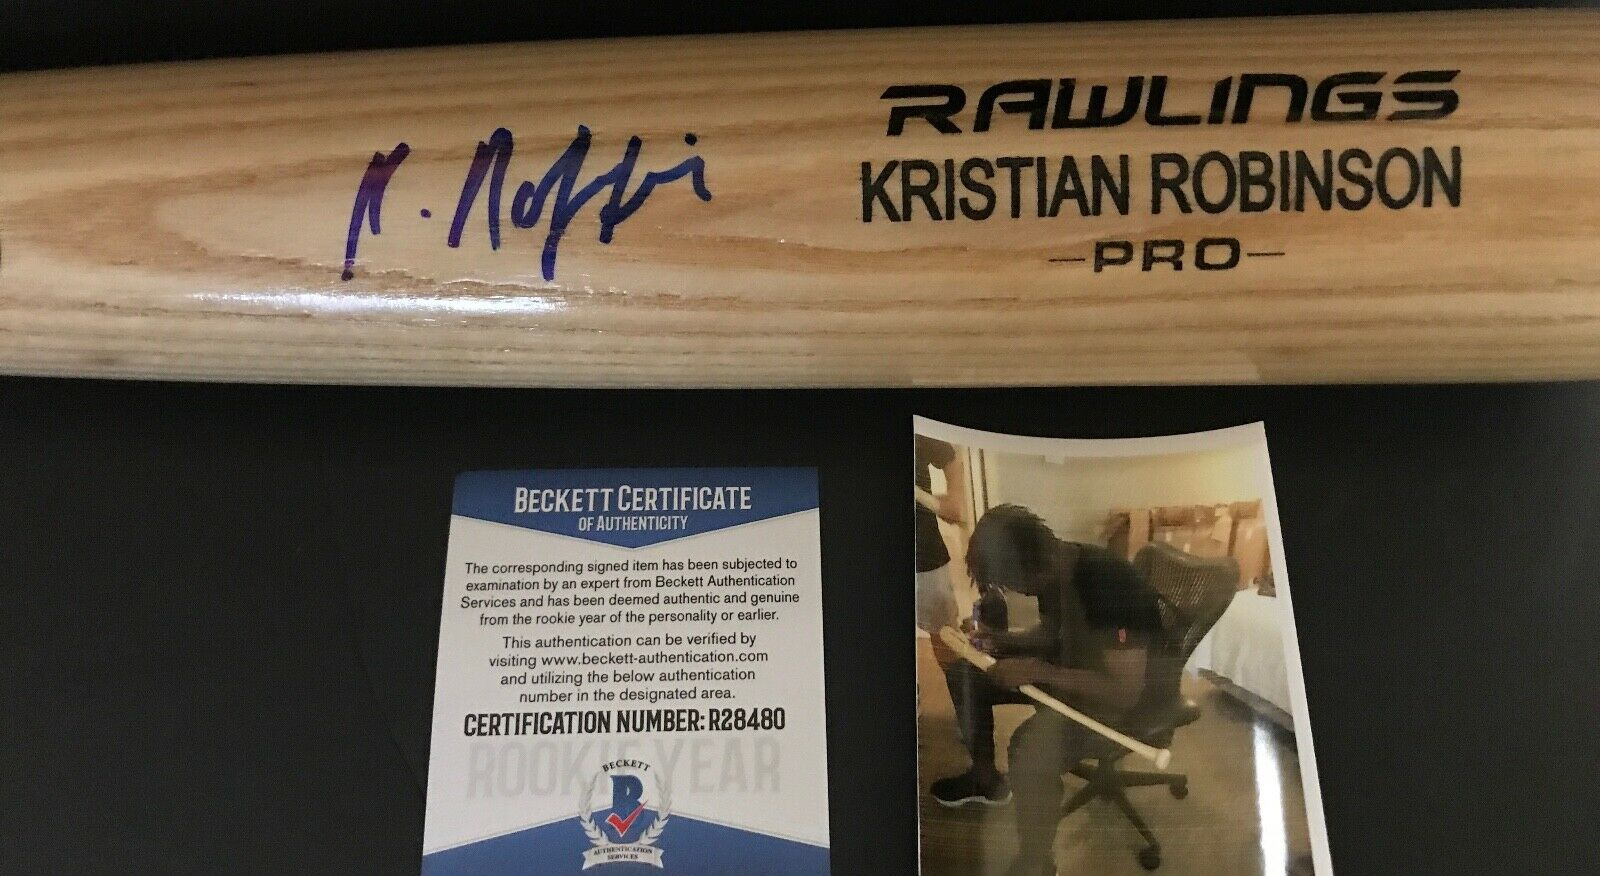 Kristian Robinson Diamondbacks Signed Engraved Blonde Bat BECKETT ROOKIE COA 1